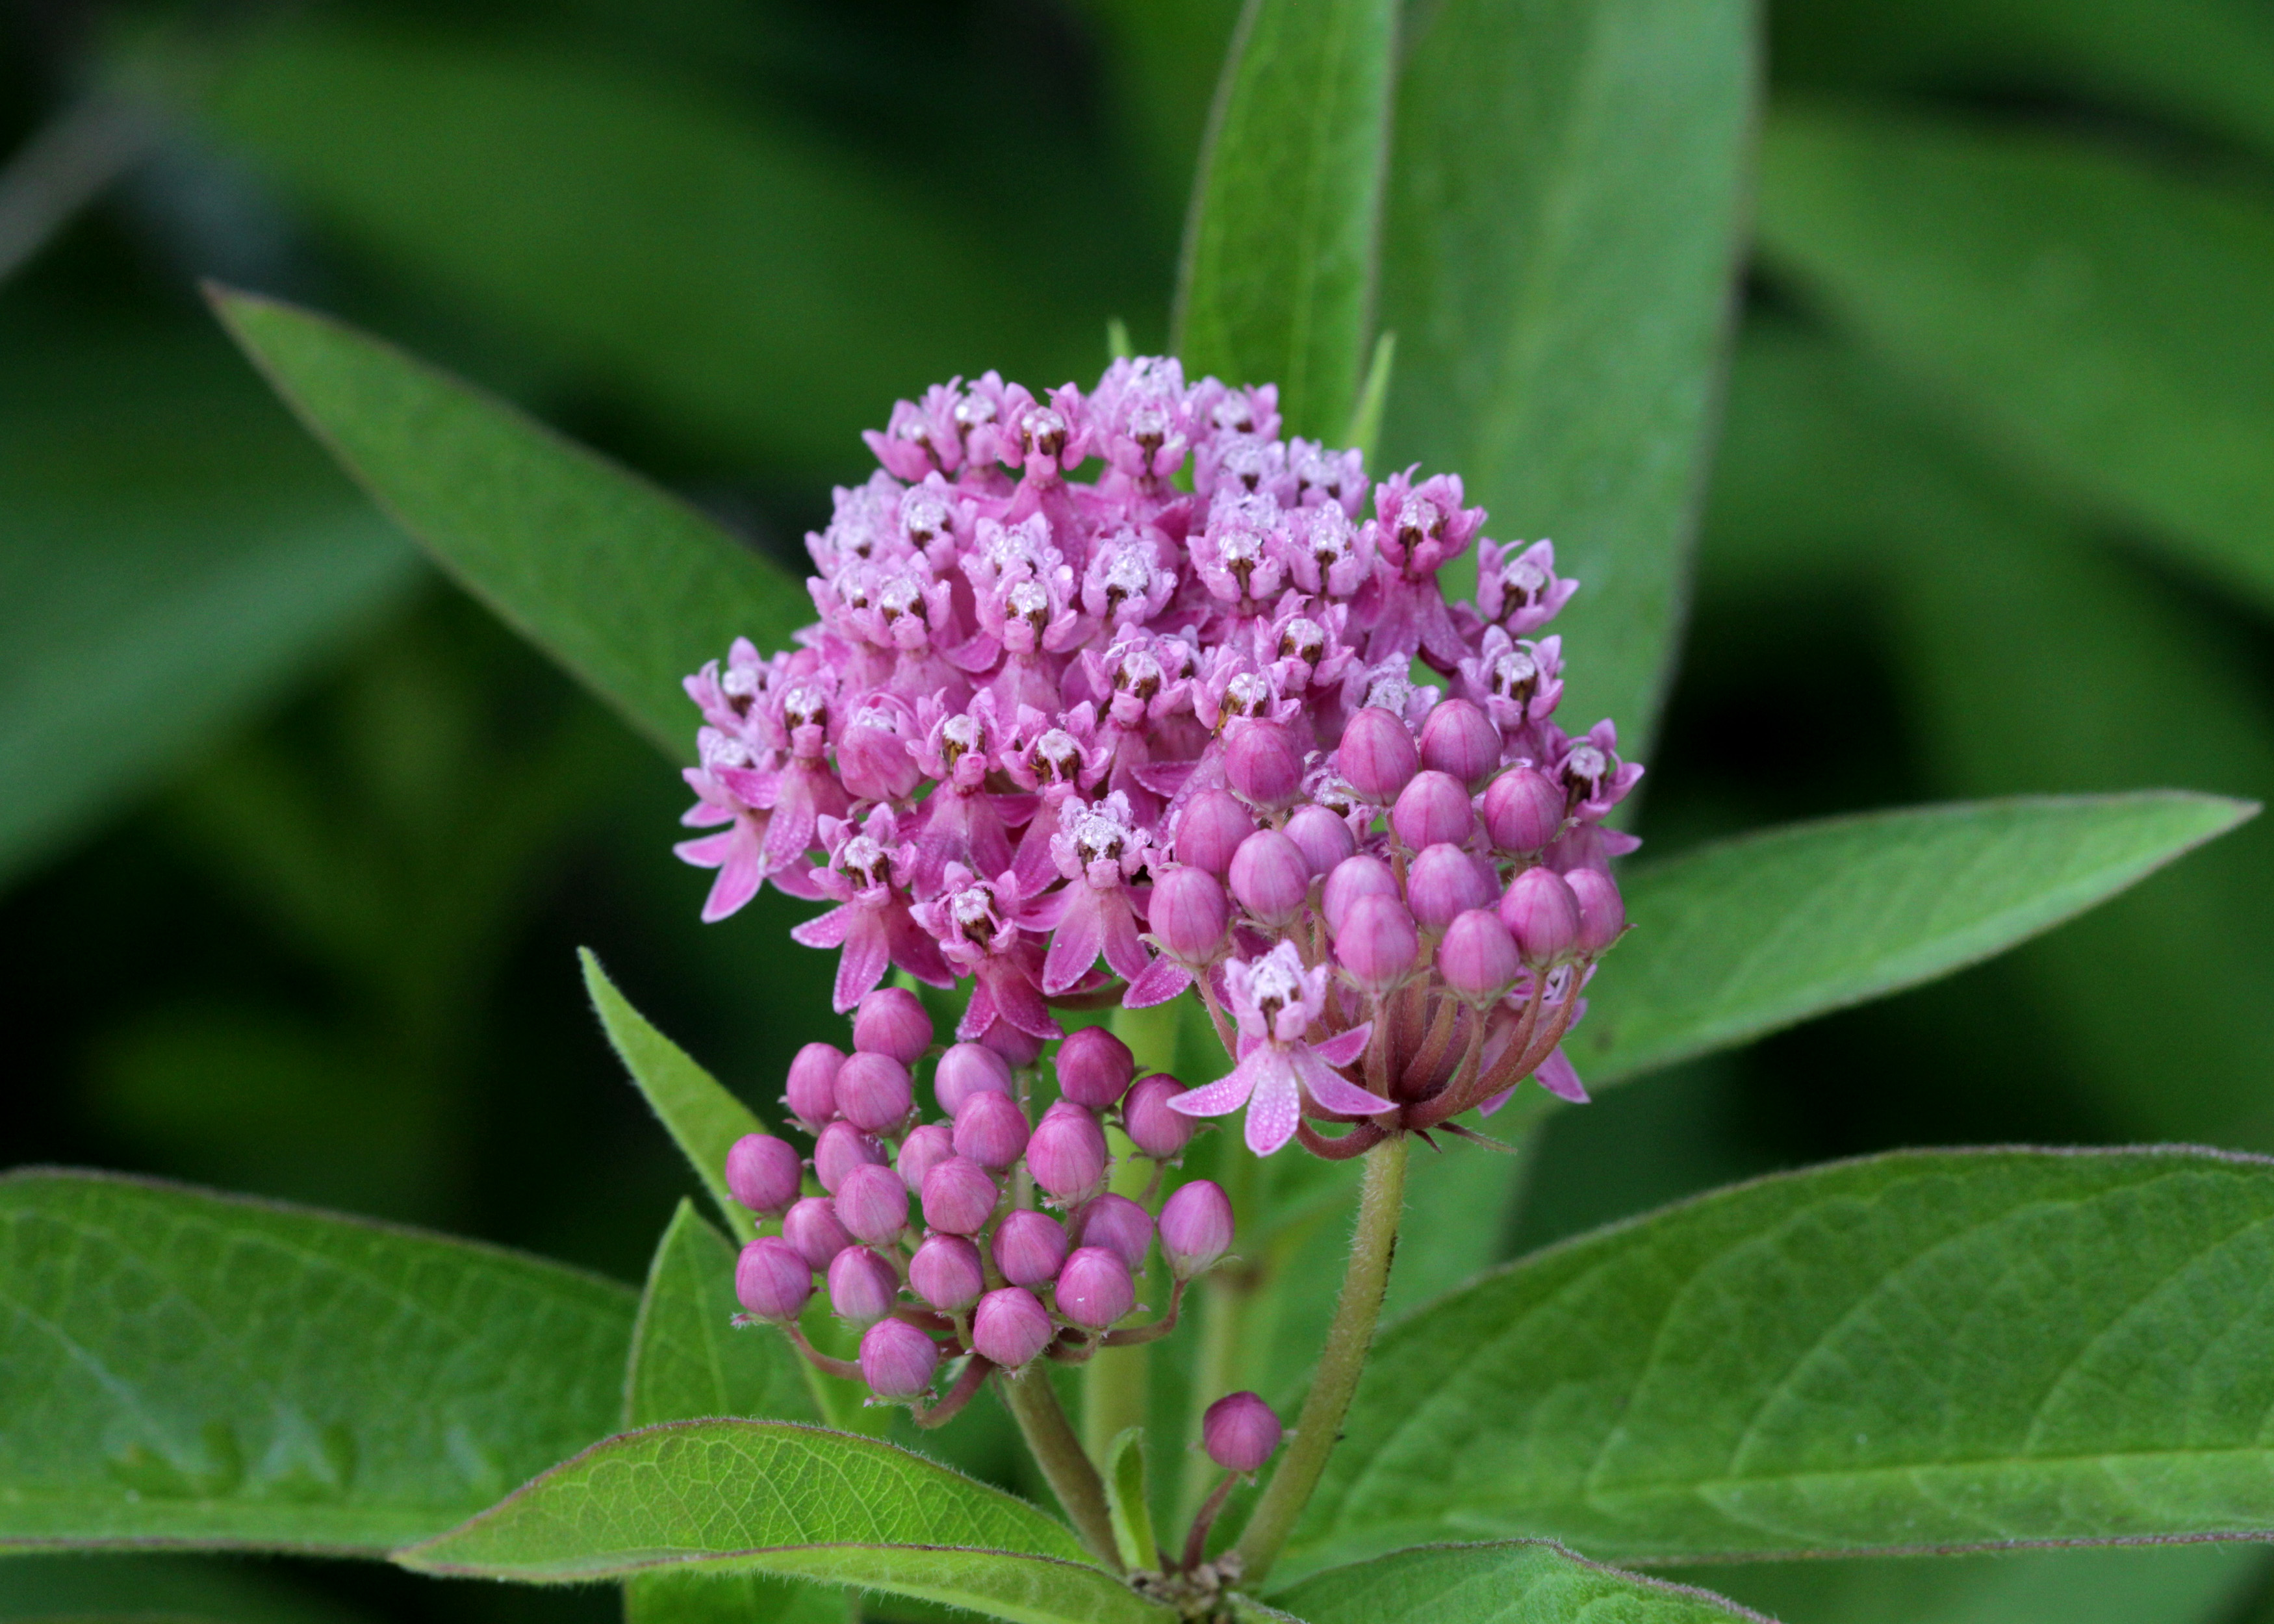 The Scientific Name is Asclepias incarnata var. pulchra. You will likely hear them called Eastern Swamp Milkweed. This picture shows the In the wild, Asclepias incarnata, Swamp Milkweed, prefers wetter areas.  Bright pink blossoms and pale green foliage are handsome.  of Asclepias incarnata var. pulchra